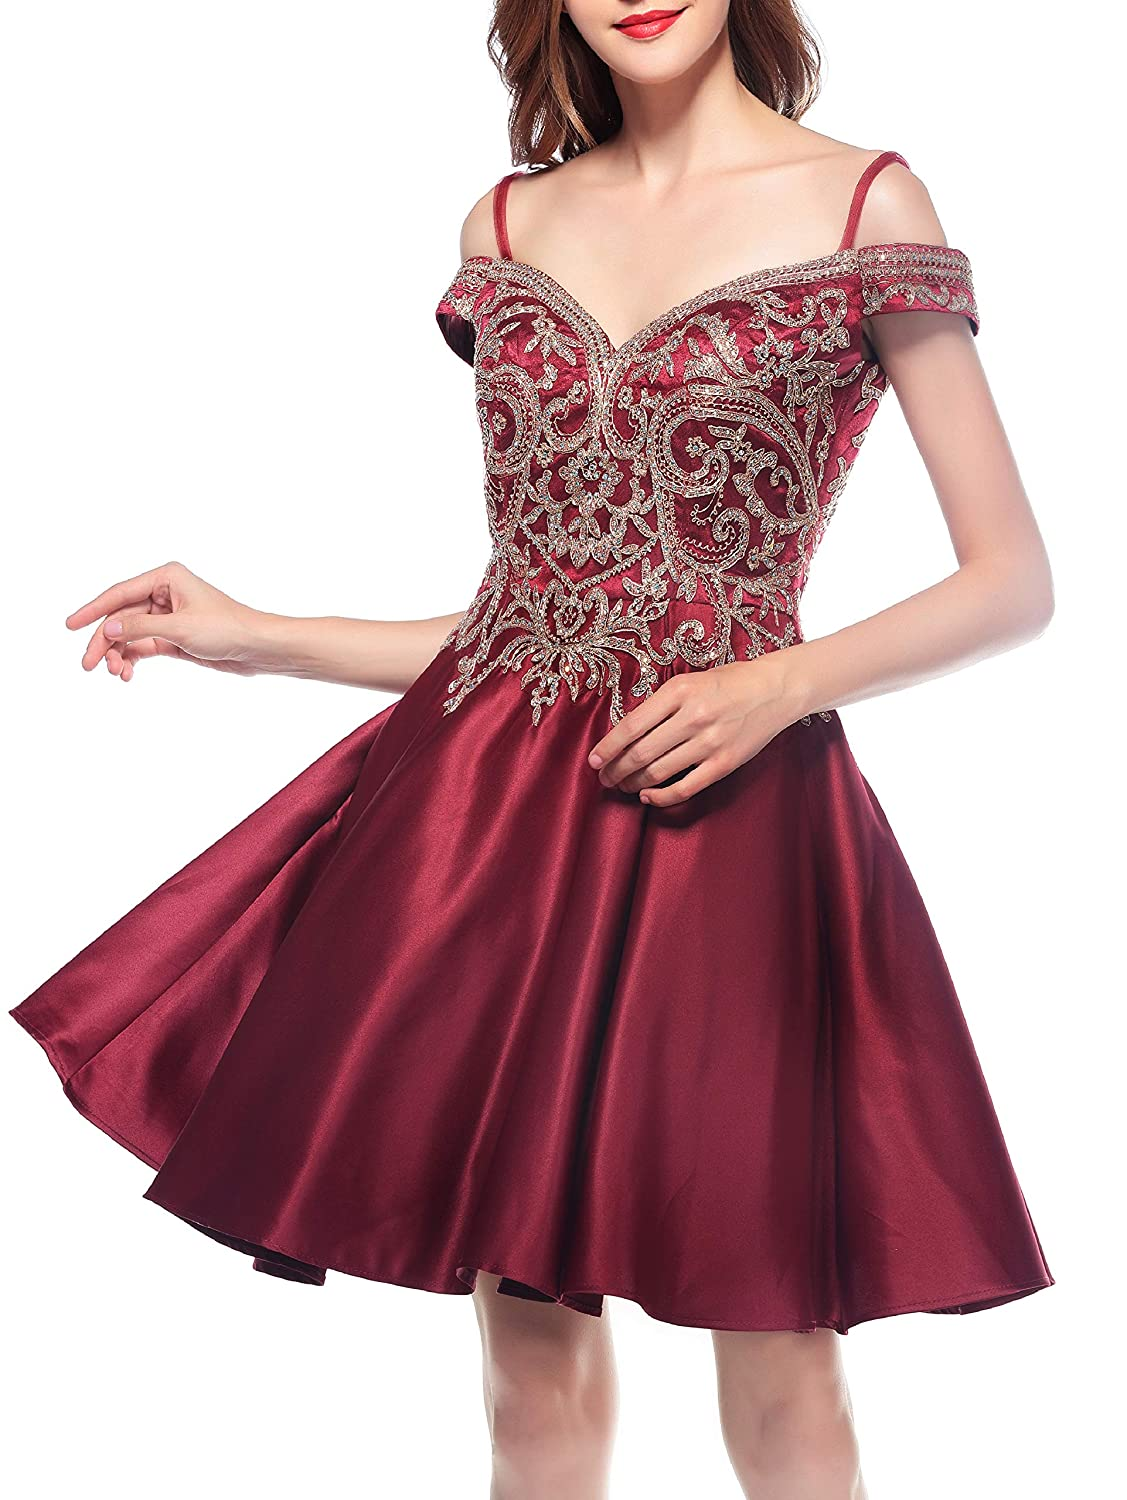 4b9549d52a7 Top 10 wholesale Size 18 Homecoming Dresses - Chinabrands.com